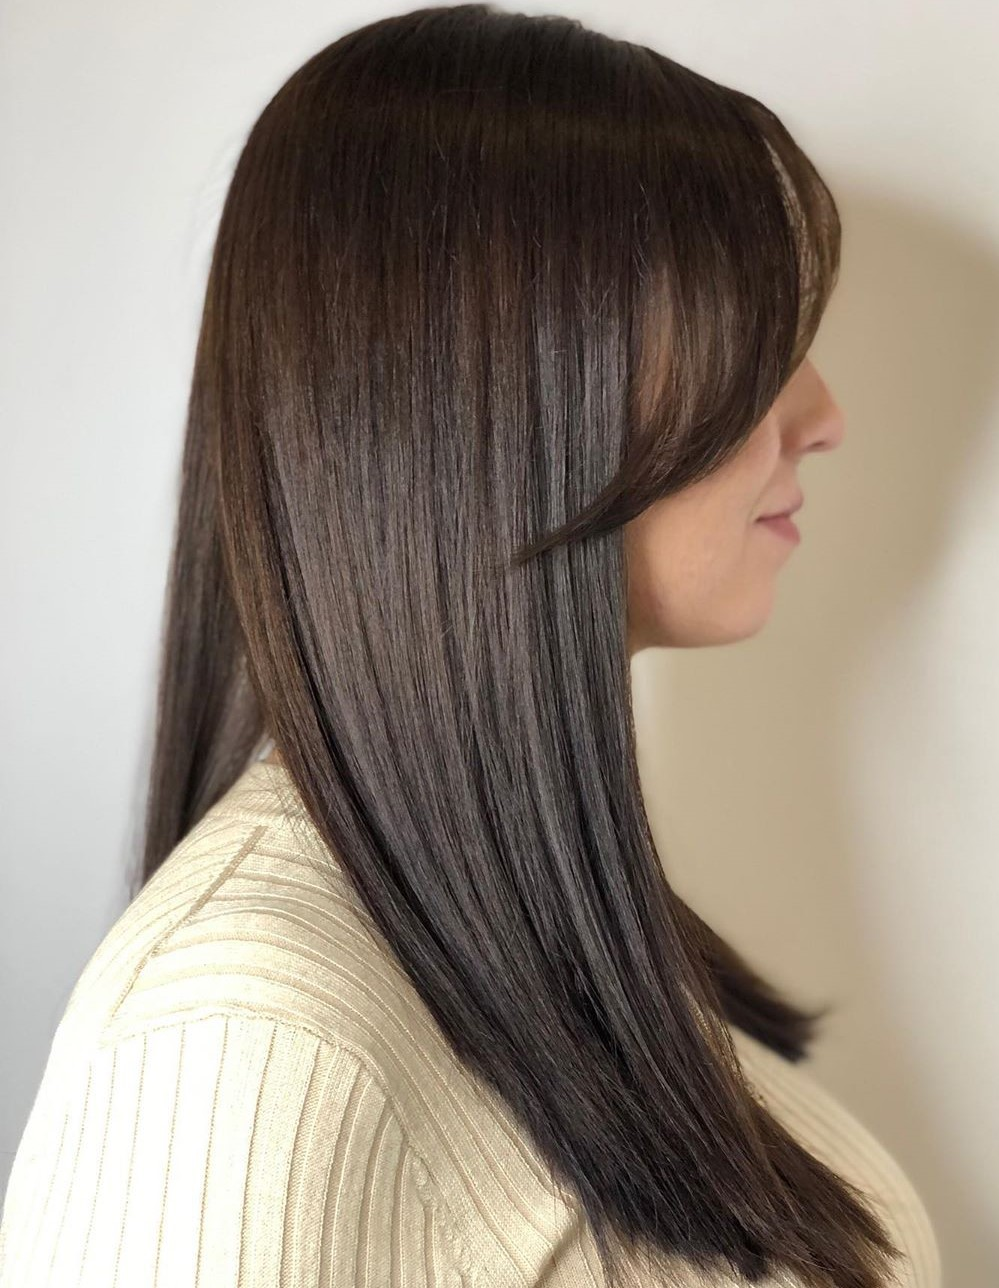 Sleek Long Hair with Side-Swept Bangs